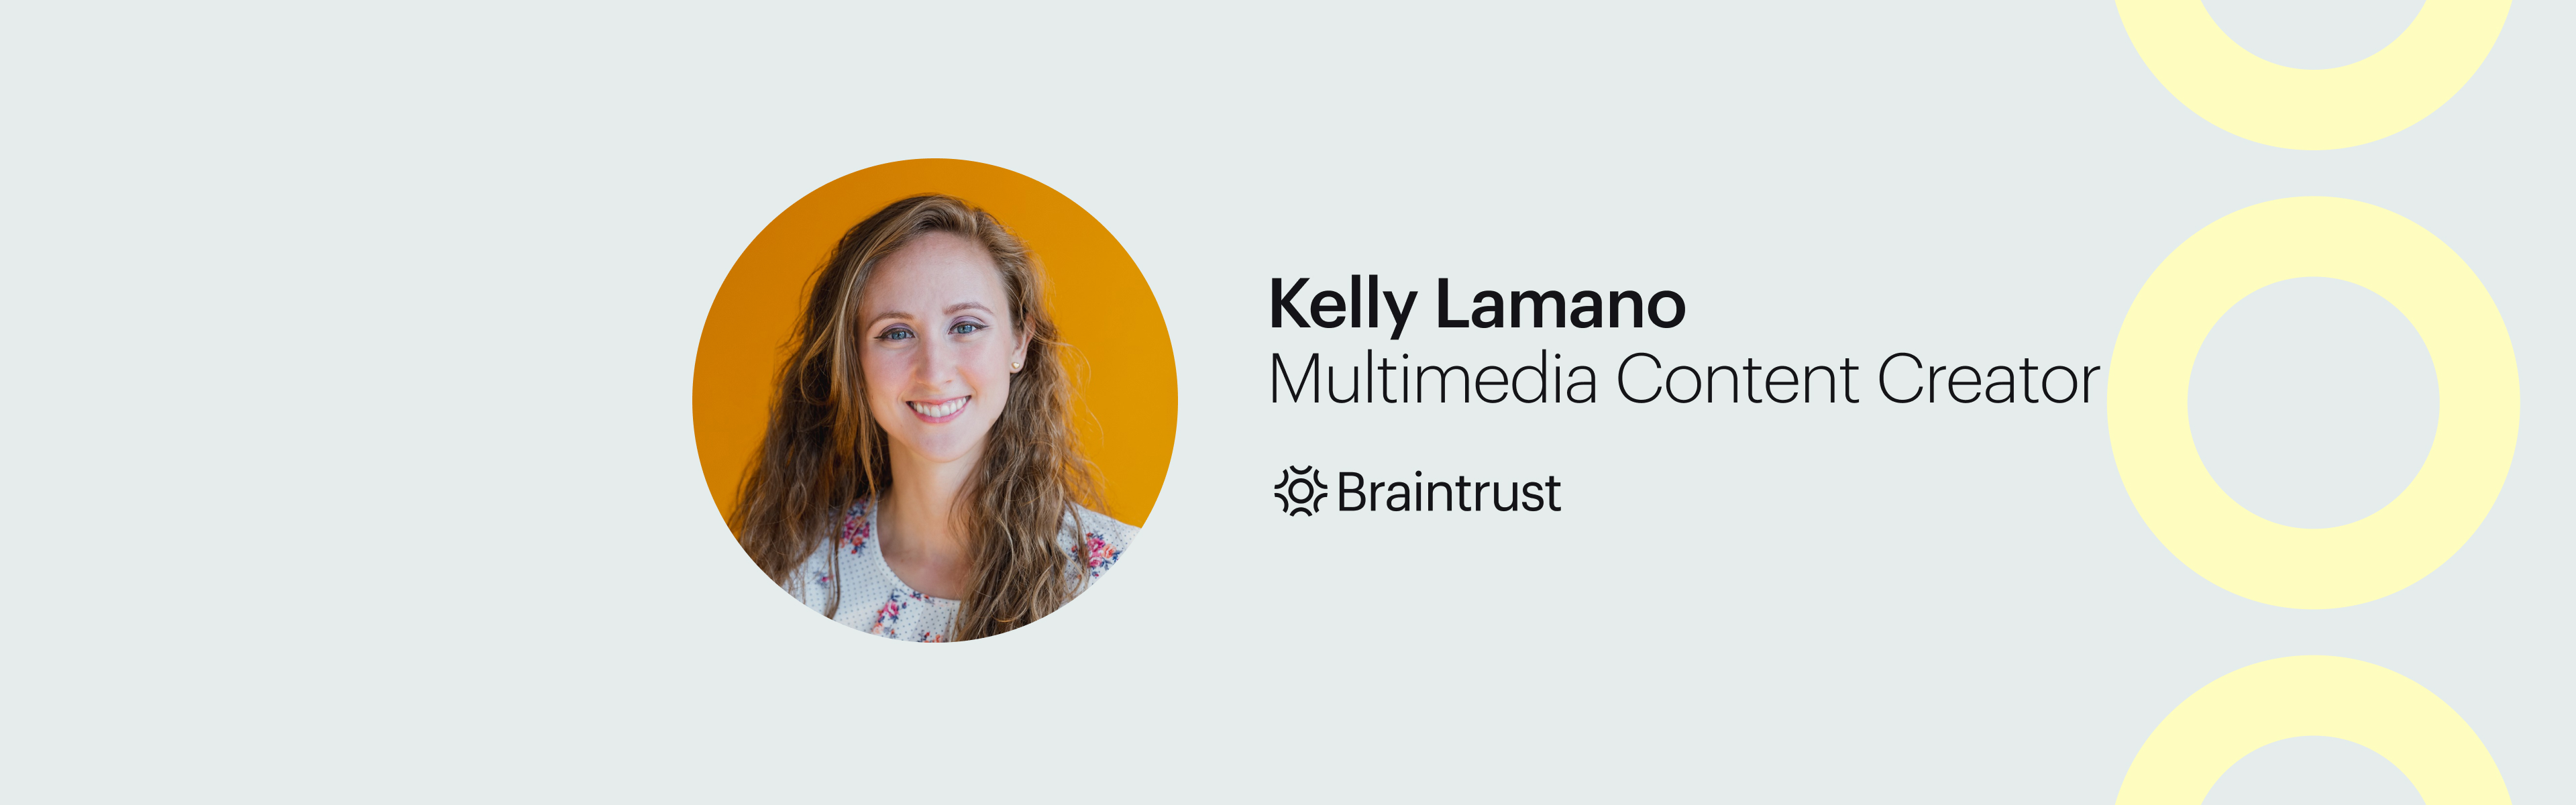 Talent Feature_ How Kelly Lamano, Multimedia Content Creator, helped 10X her impact in 4 months. Braintrust Blog Banner